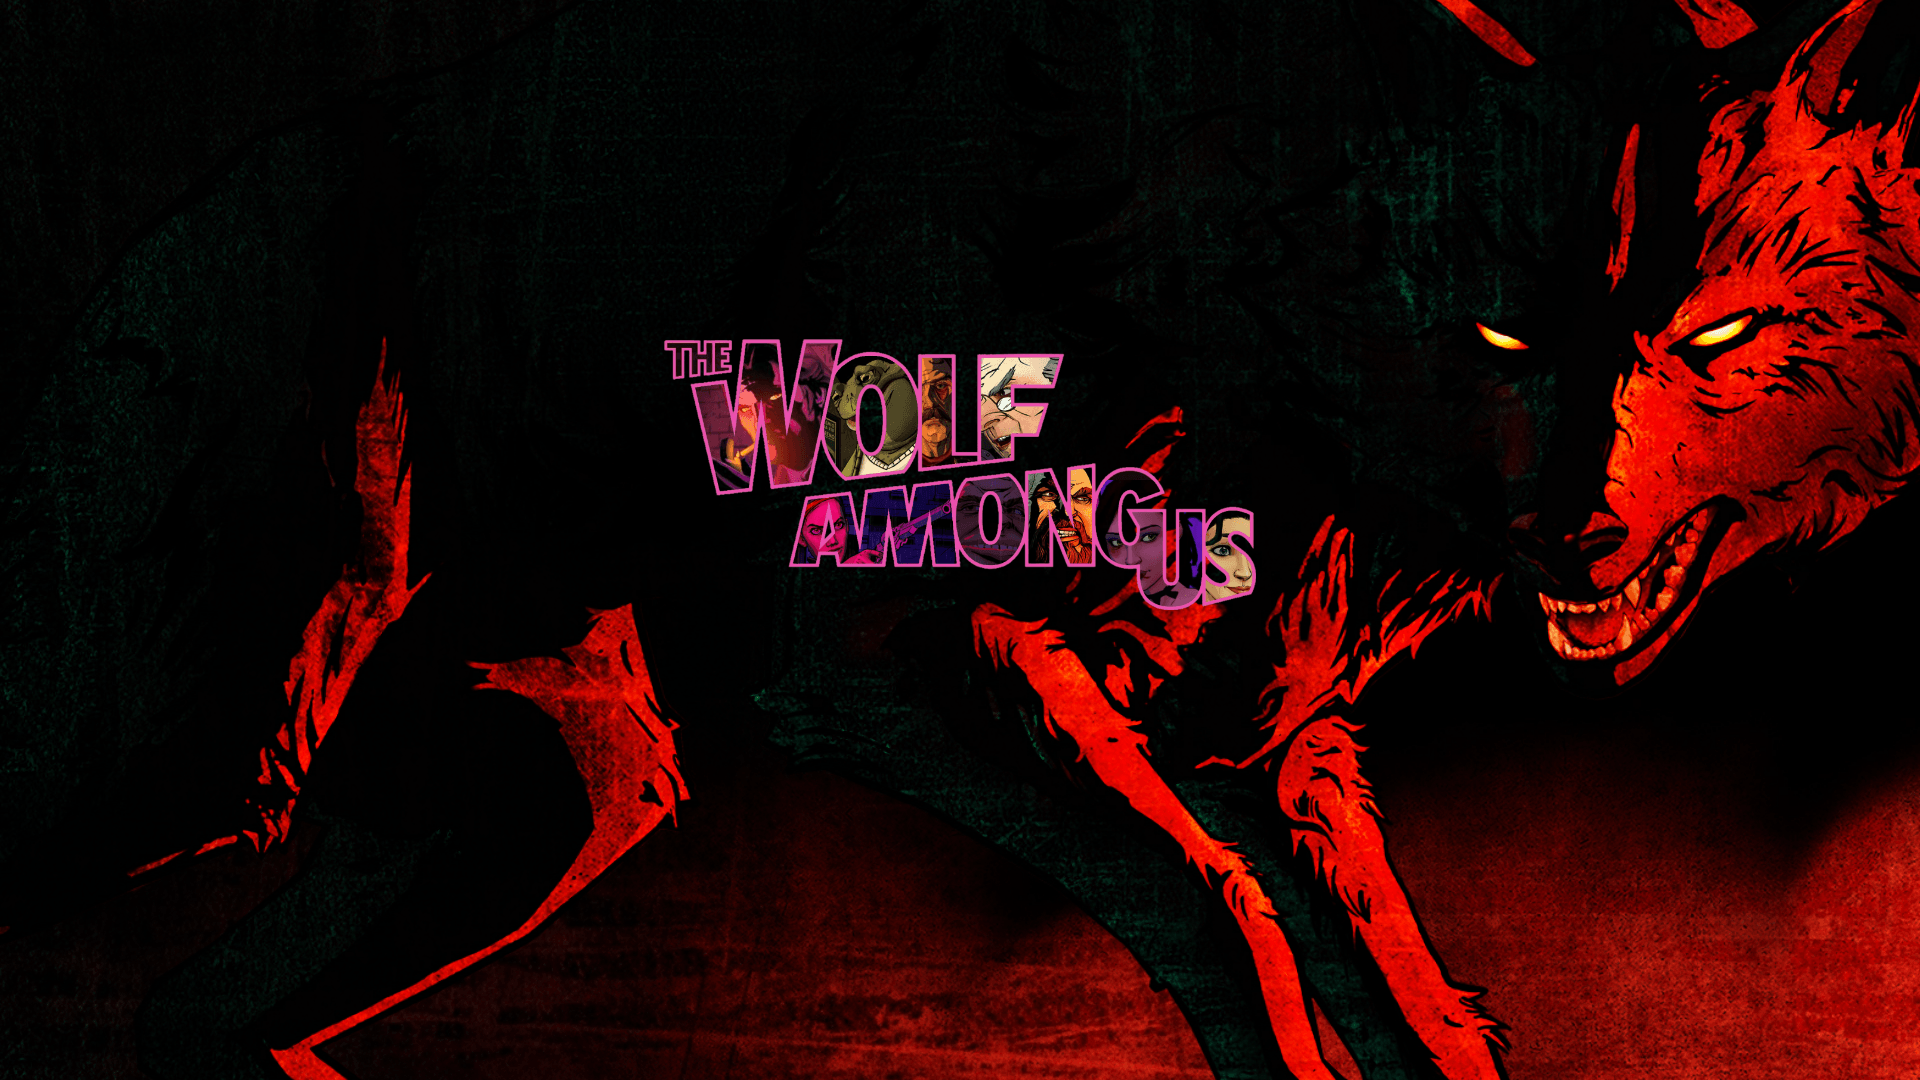 The Wolf Among Us iPhone Wallpapers - Top Free The Wolf ...